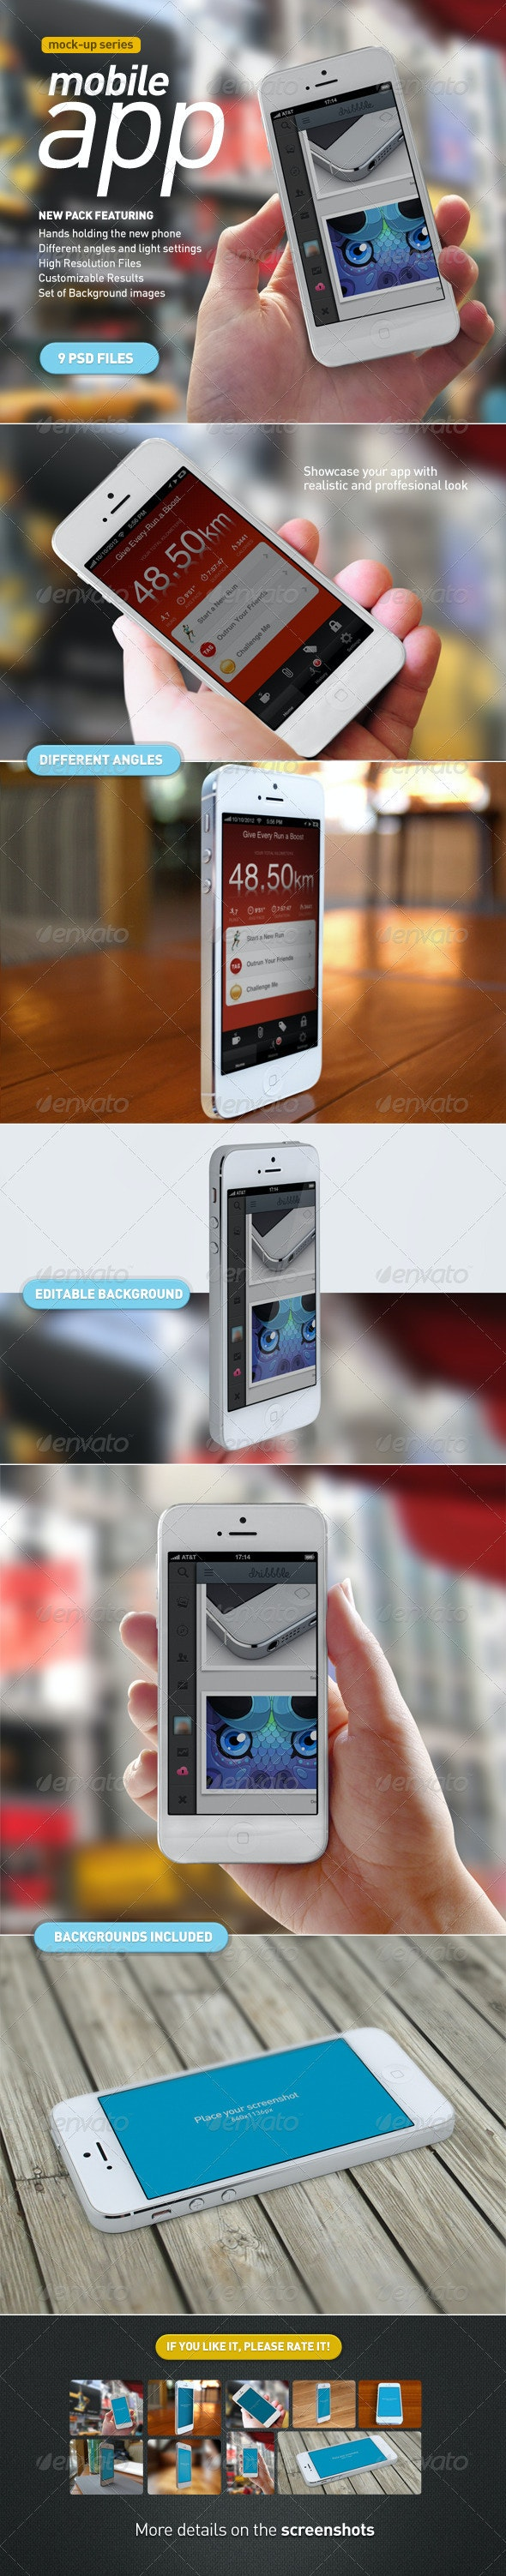 Mobile App | White Phone Mock-Up - Mobile Displays